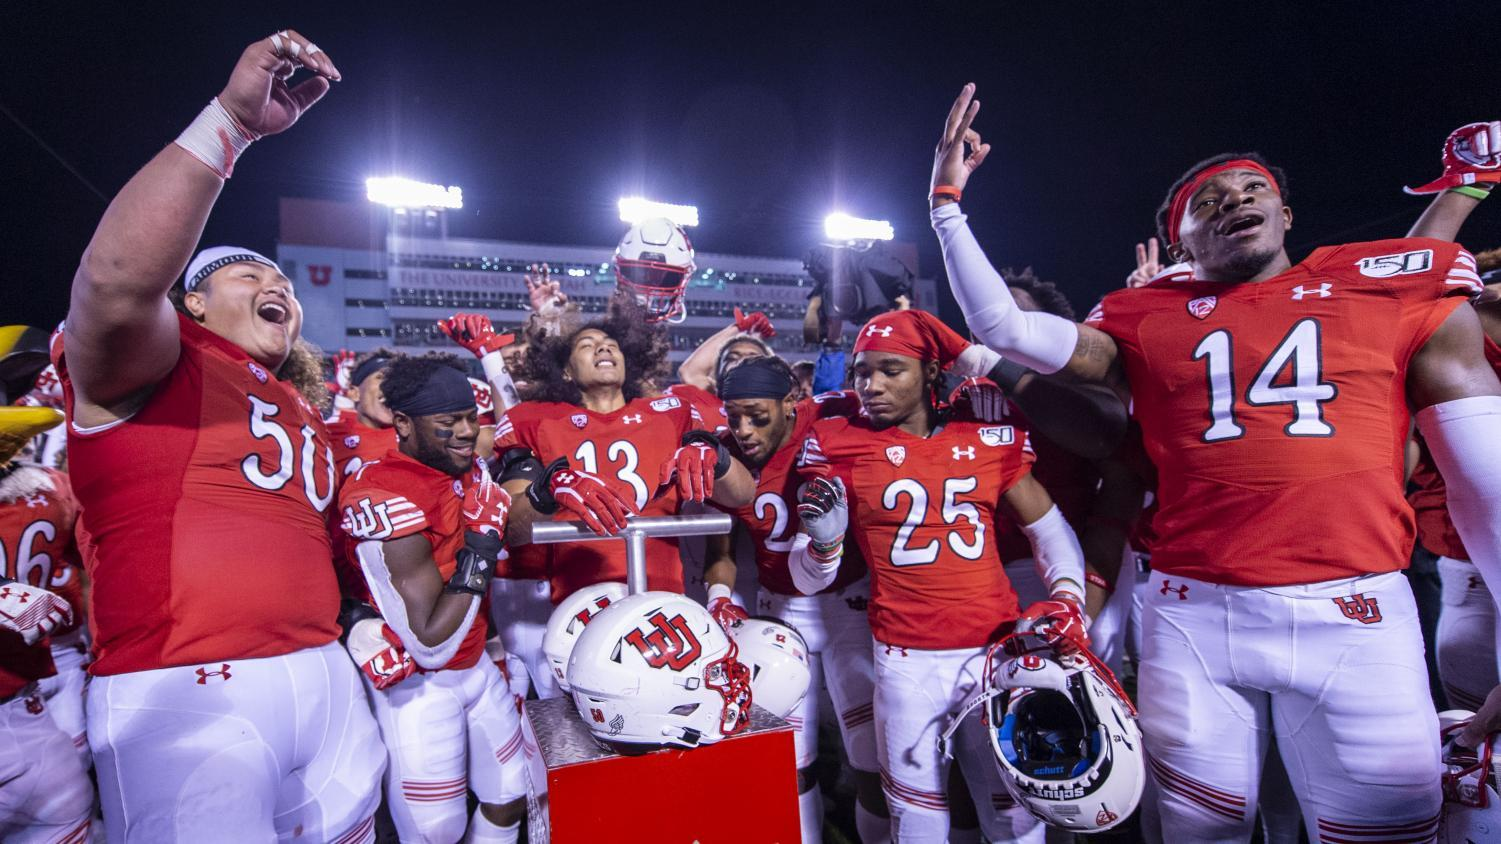 The University of Utah football team sings the Utah fight song following an NCAA Football game vs. Washington State at Rice Eccles Stadium in Salt Lake City, Utah on Saturday, Sept. 28, 2019. (Photo by Kiffer Creveling | The Daily Utah Chronicle)